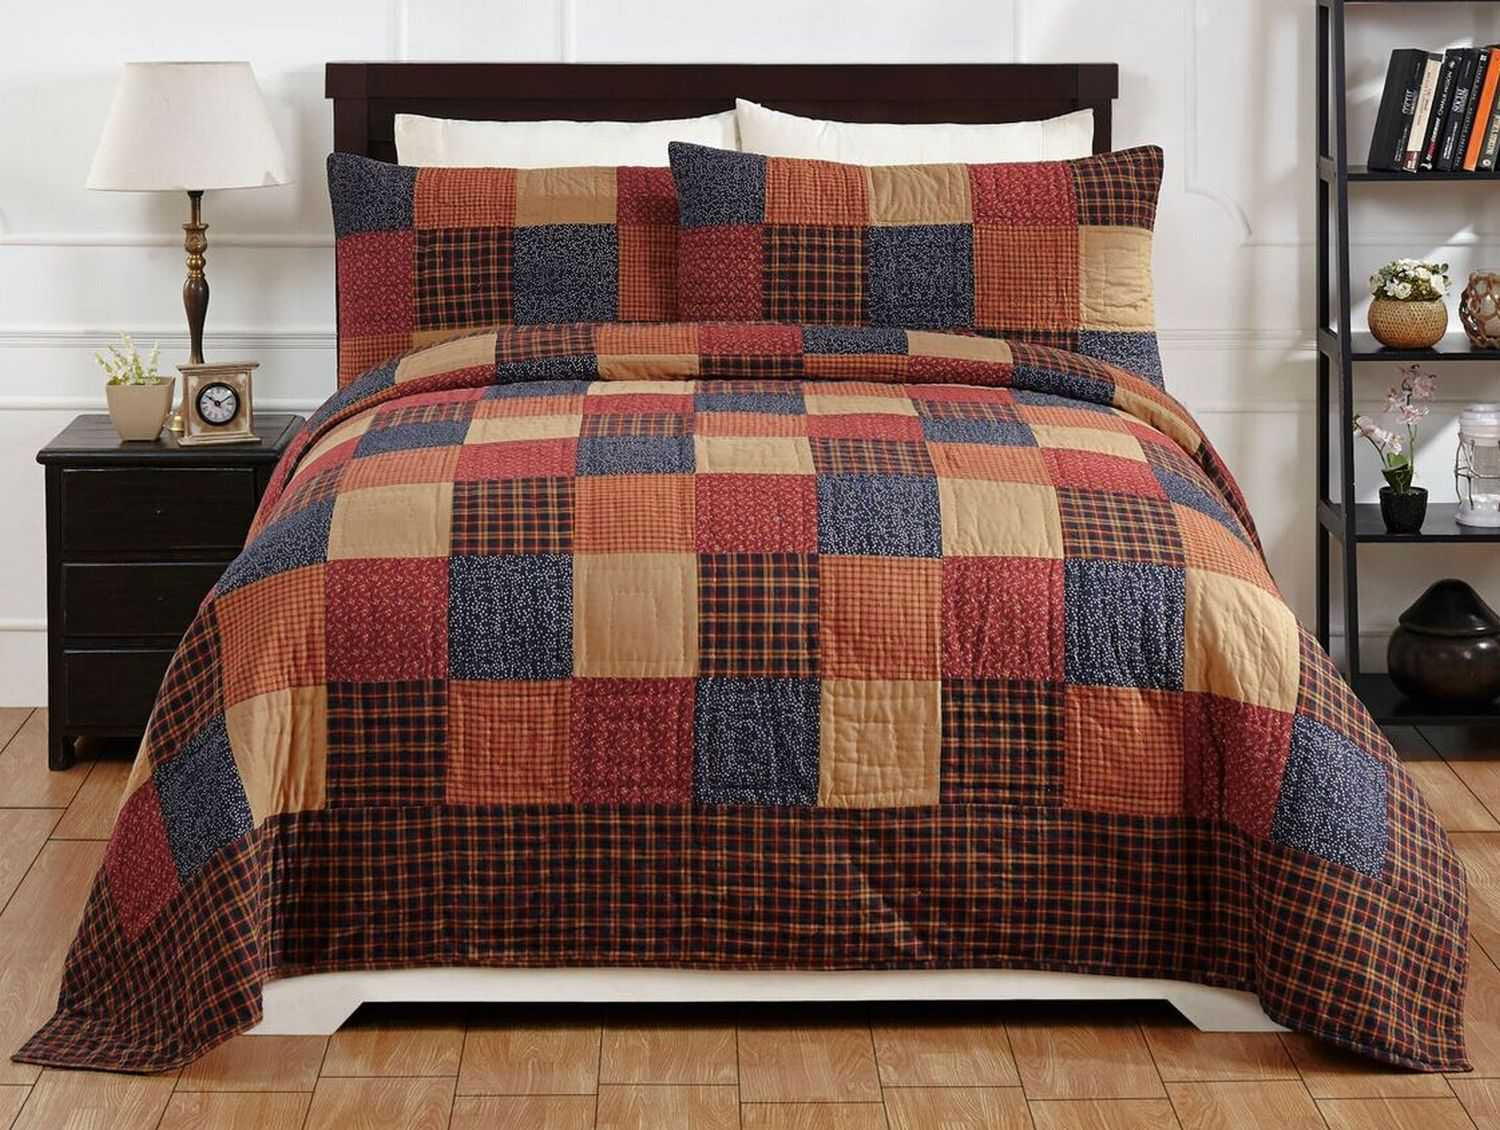 Old Glory King Quilt Combo w/Shams - Allysons Place : old glory quilt - Adamdwight.com